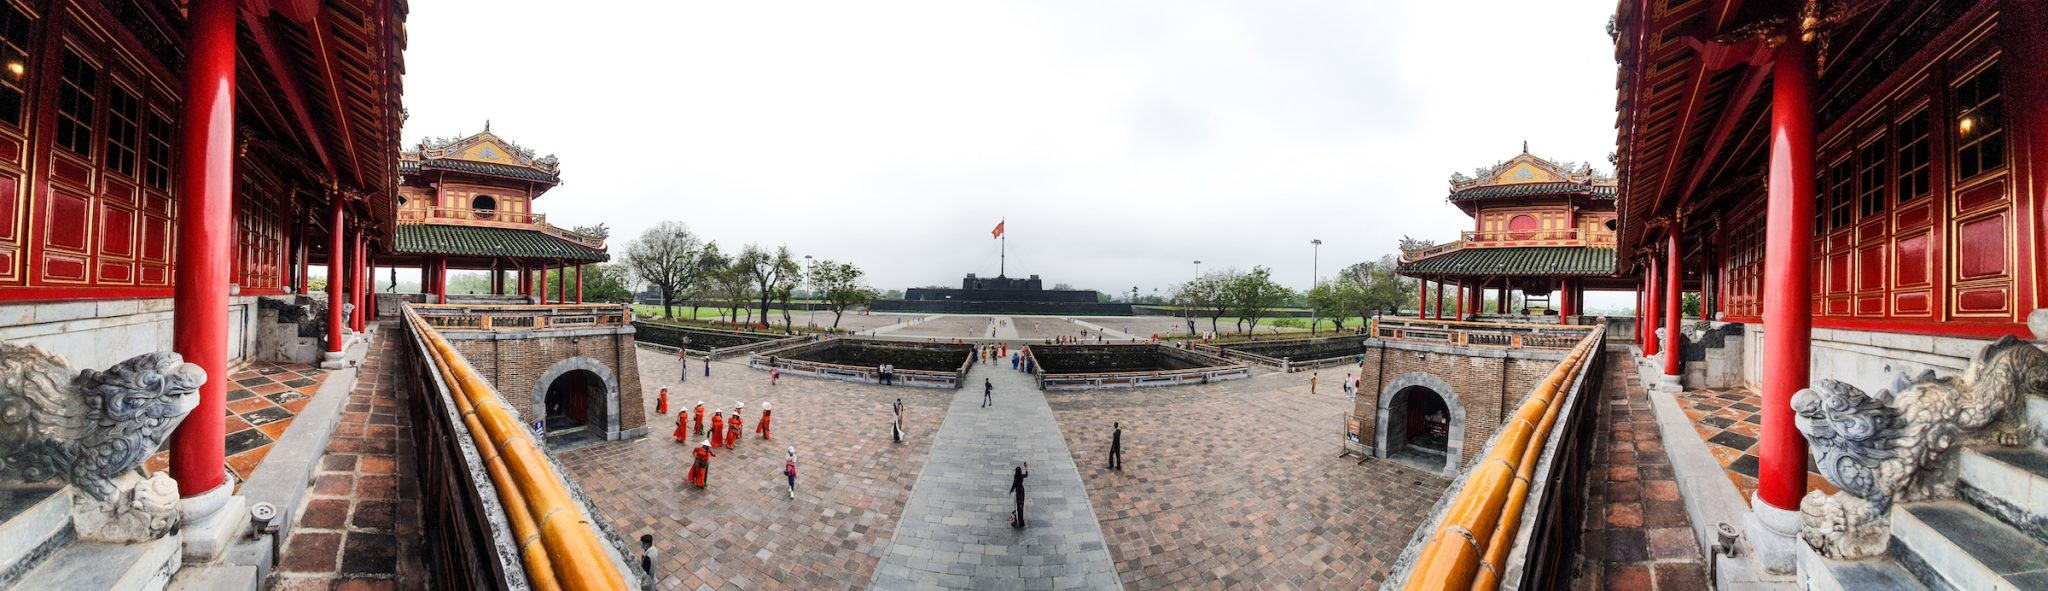 Hue Imperial City Panorama